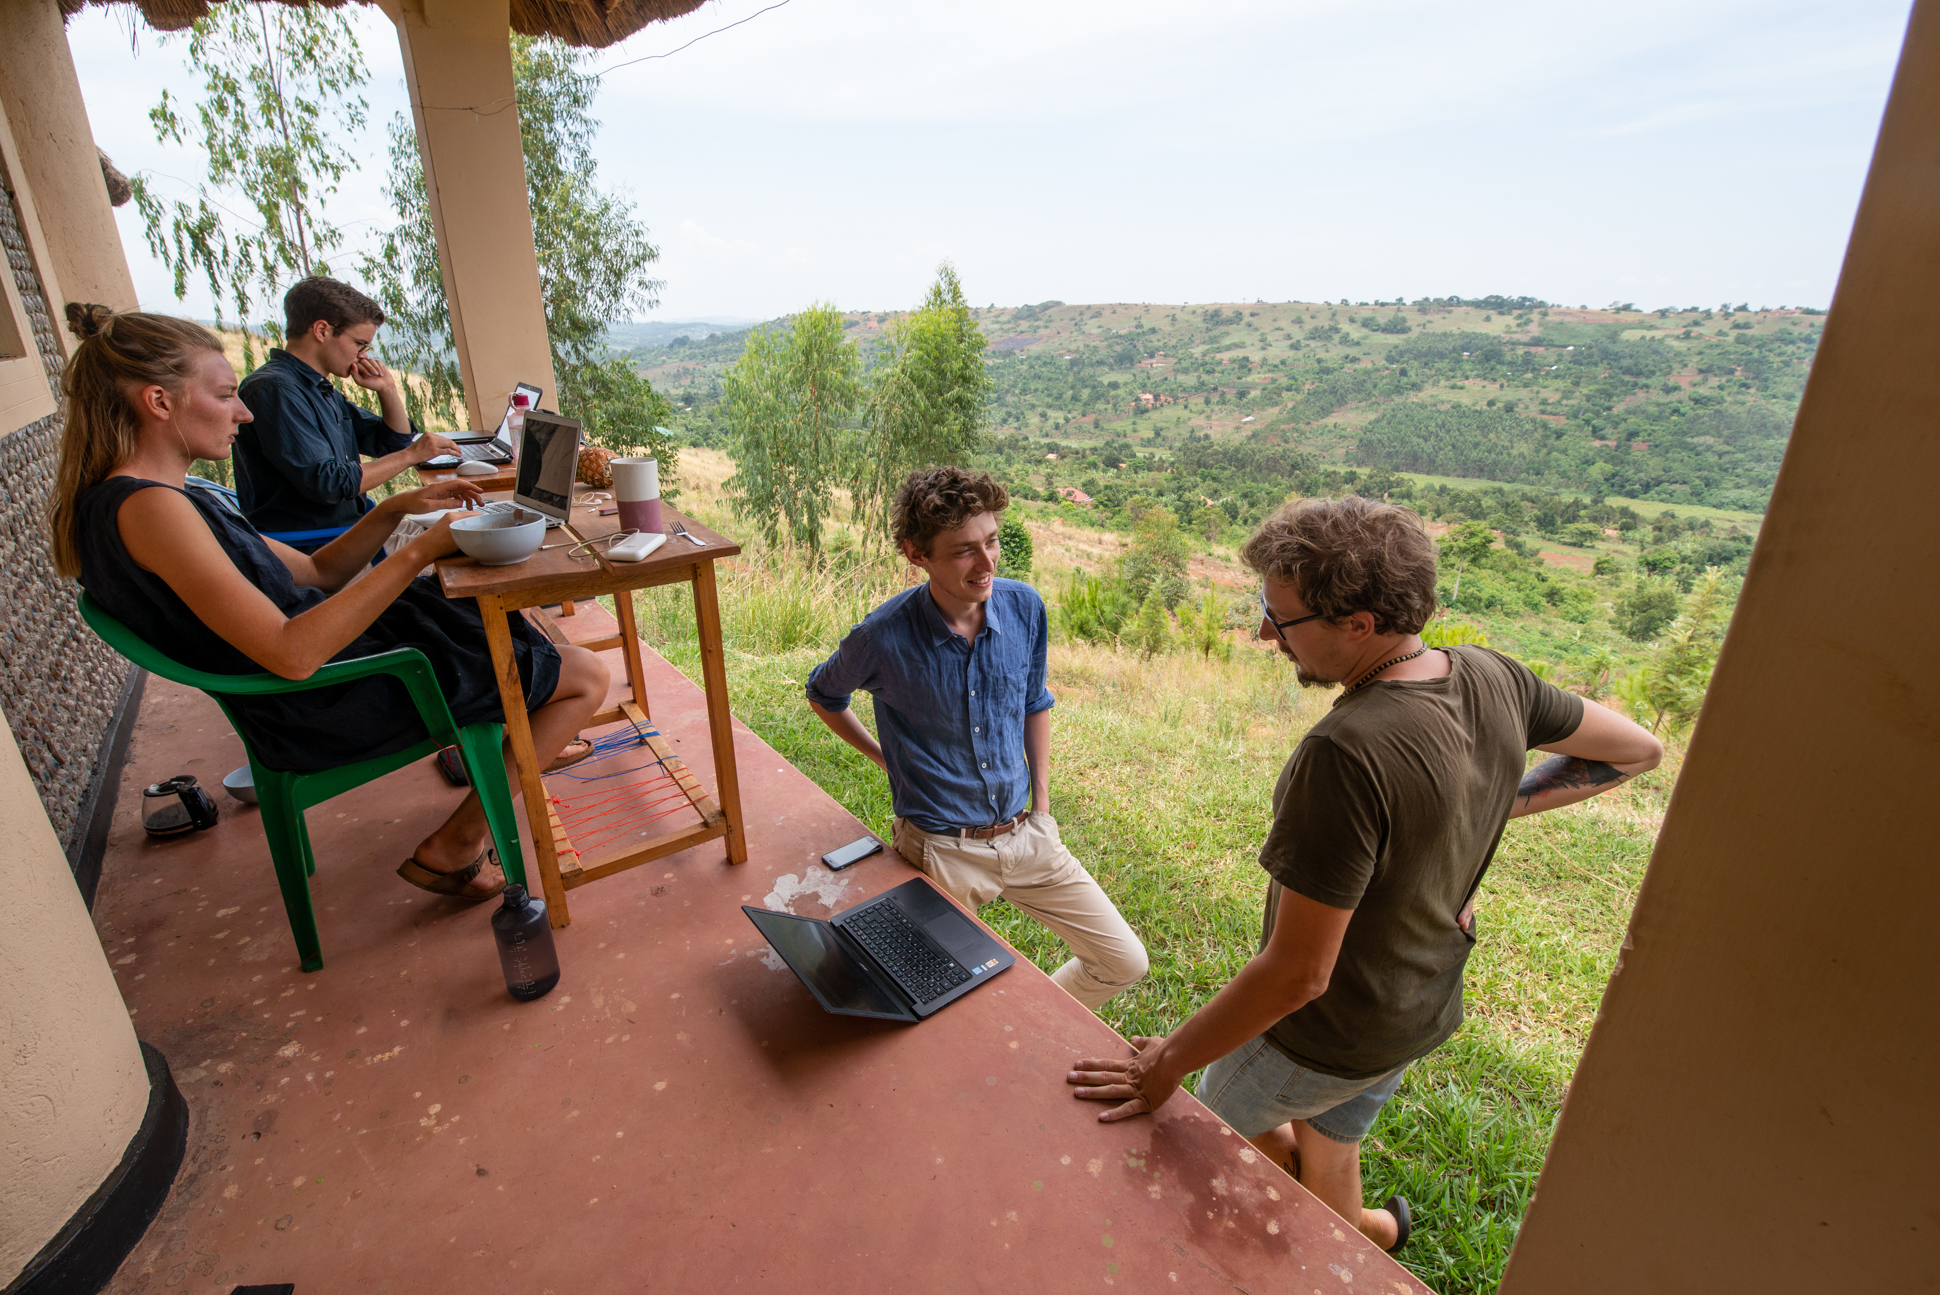 Working in Uganda, SINA as a digital nomad with a great view of green hills.